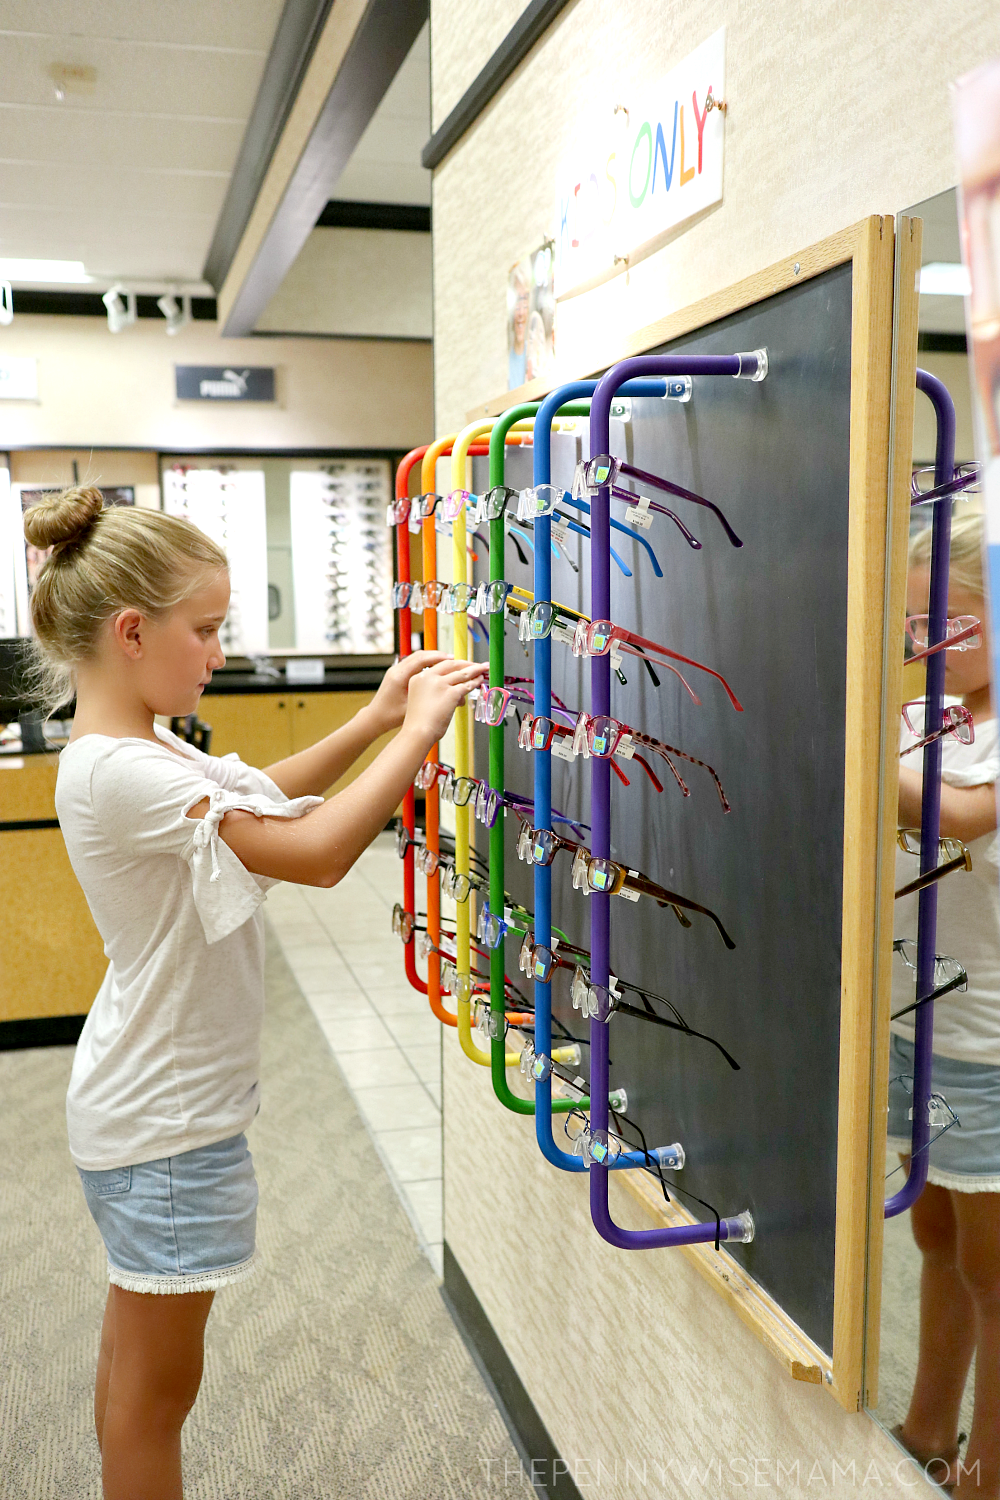 Kids Glasses at JCPenney Optical